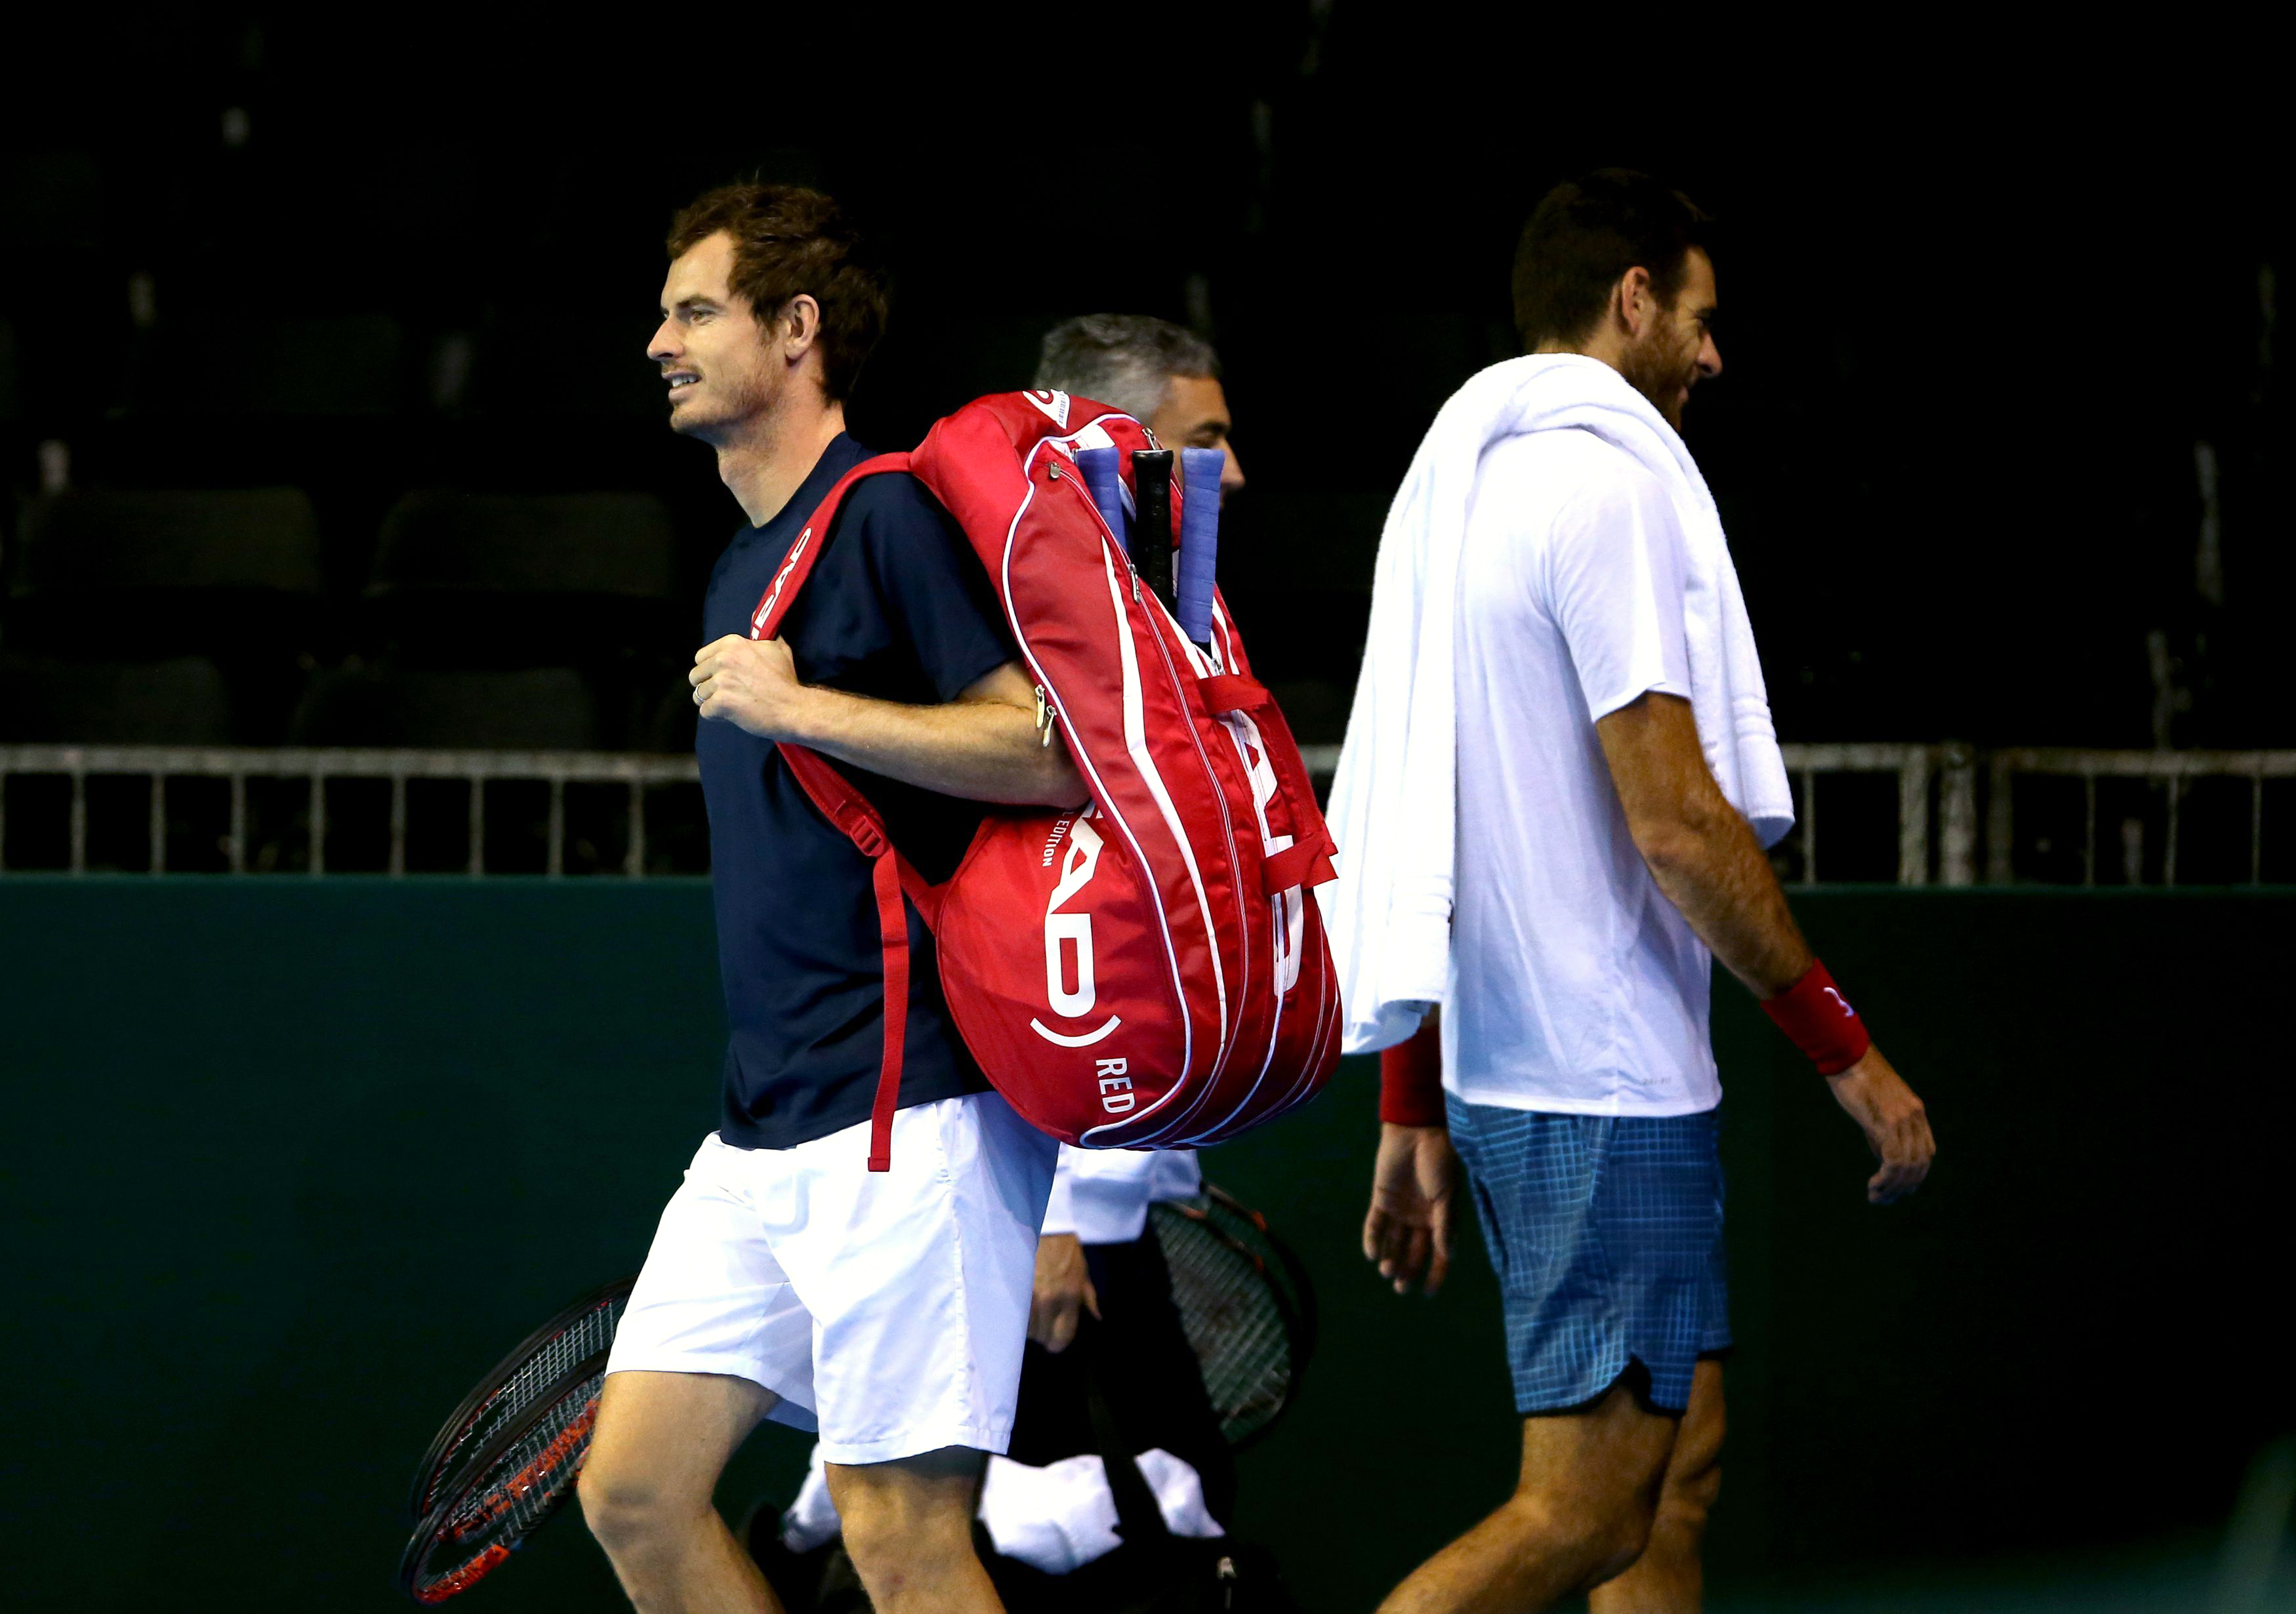 Britain's Andy Murray, left, walks on the court as Argentina's Juan Martin del Potro walks off  during training session at the Emirates Arena, Glasgow Scotland Thursday Sept.15, 2016. Britain play against Argentina a Davis Cup semifinal match starting Fri